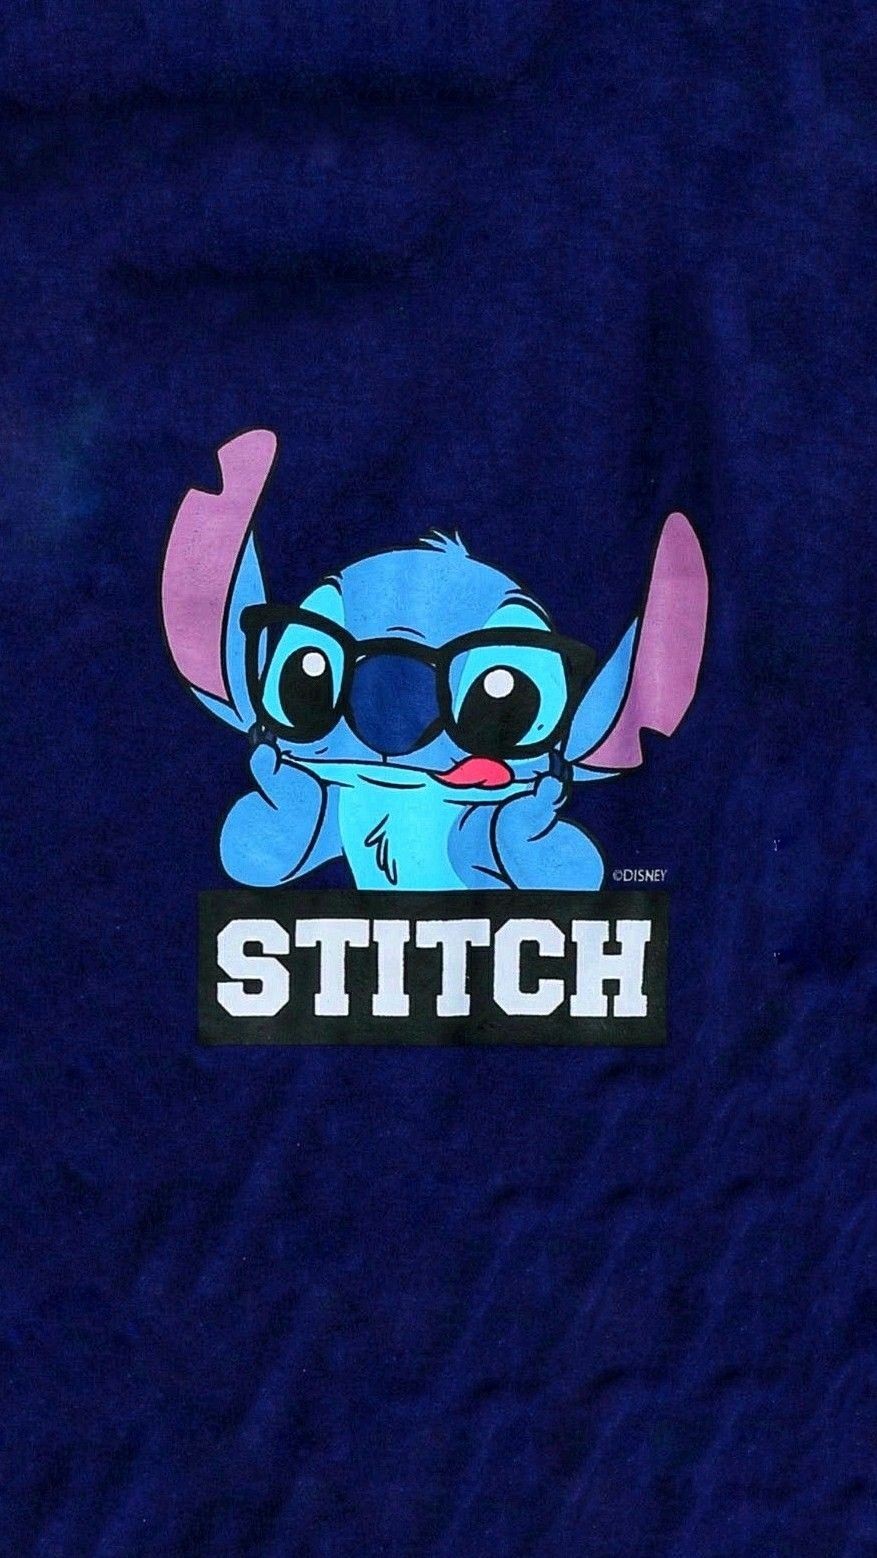 Stitch Wallpaper | Todo puntada en 2019 | Fondo de pantalla de iphone